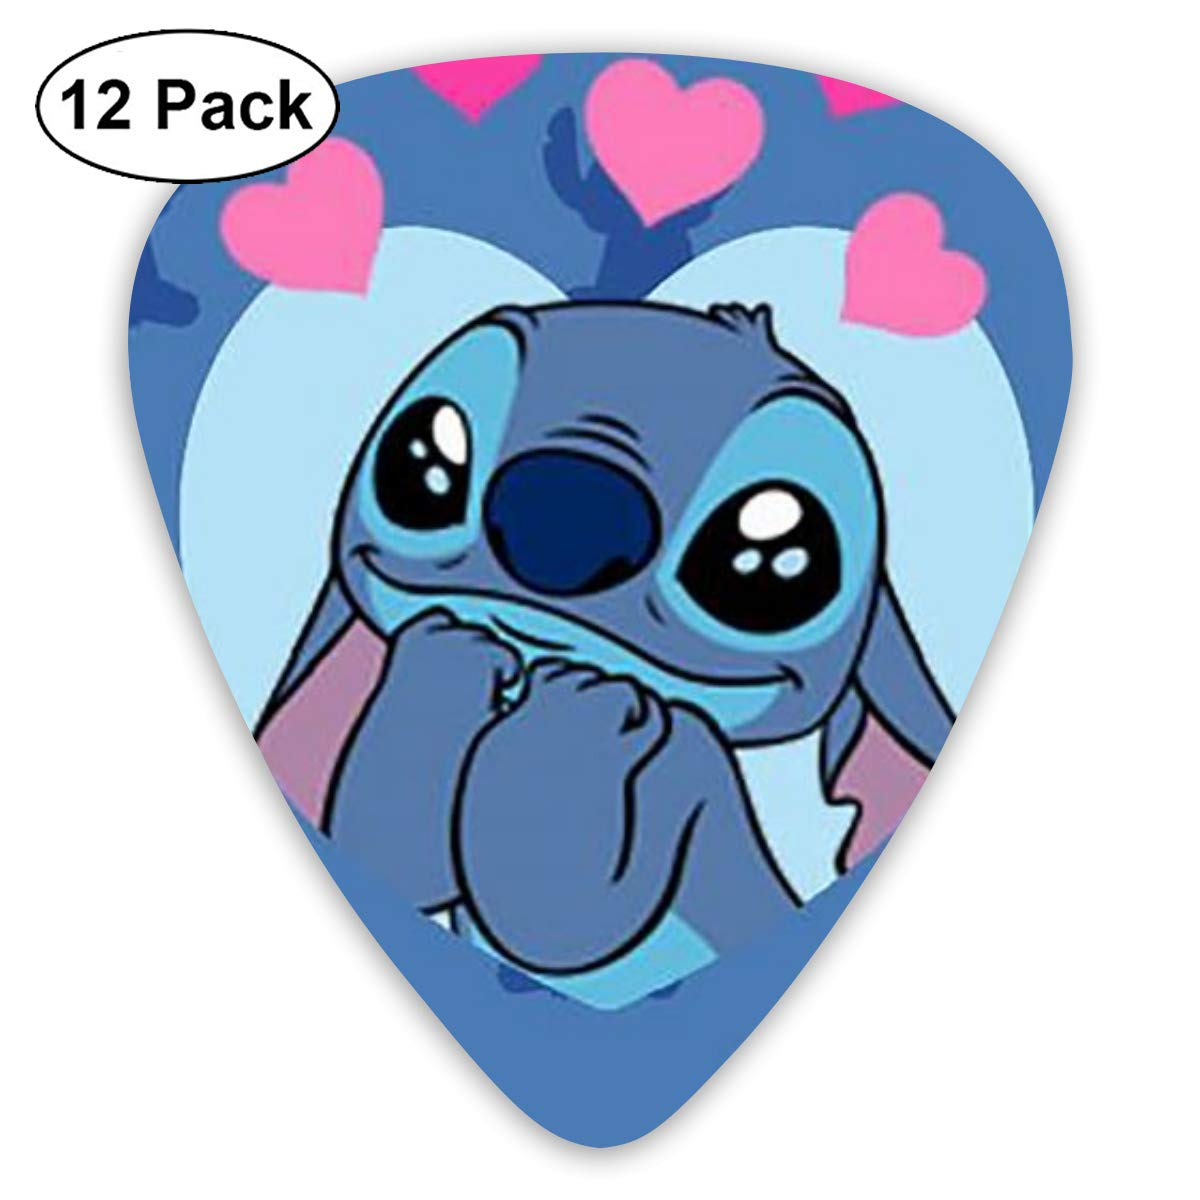 MOANDJI Stitch Fall in Love Guitar Picks, 12 Pack Unique Designs Stylish Colorful Guitar Picks for Bass, Electric and Acoustic Guitars